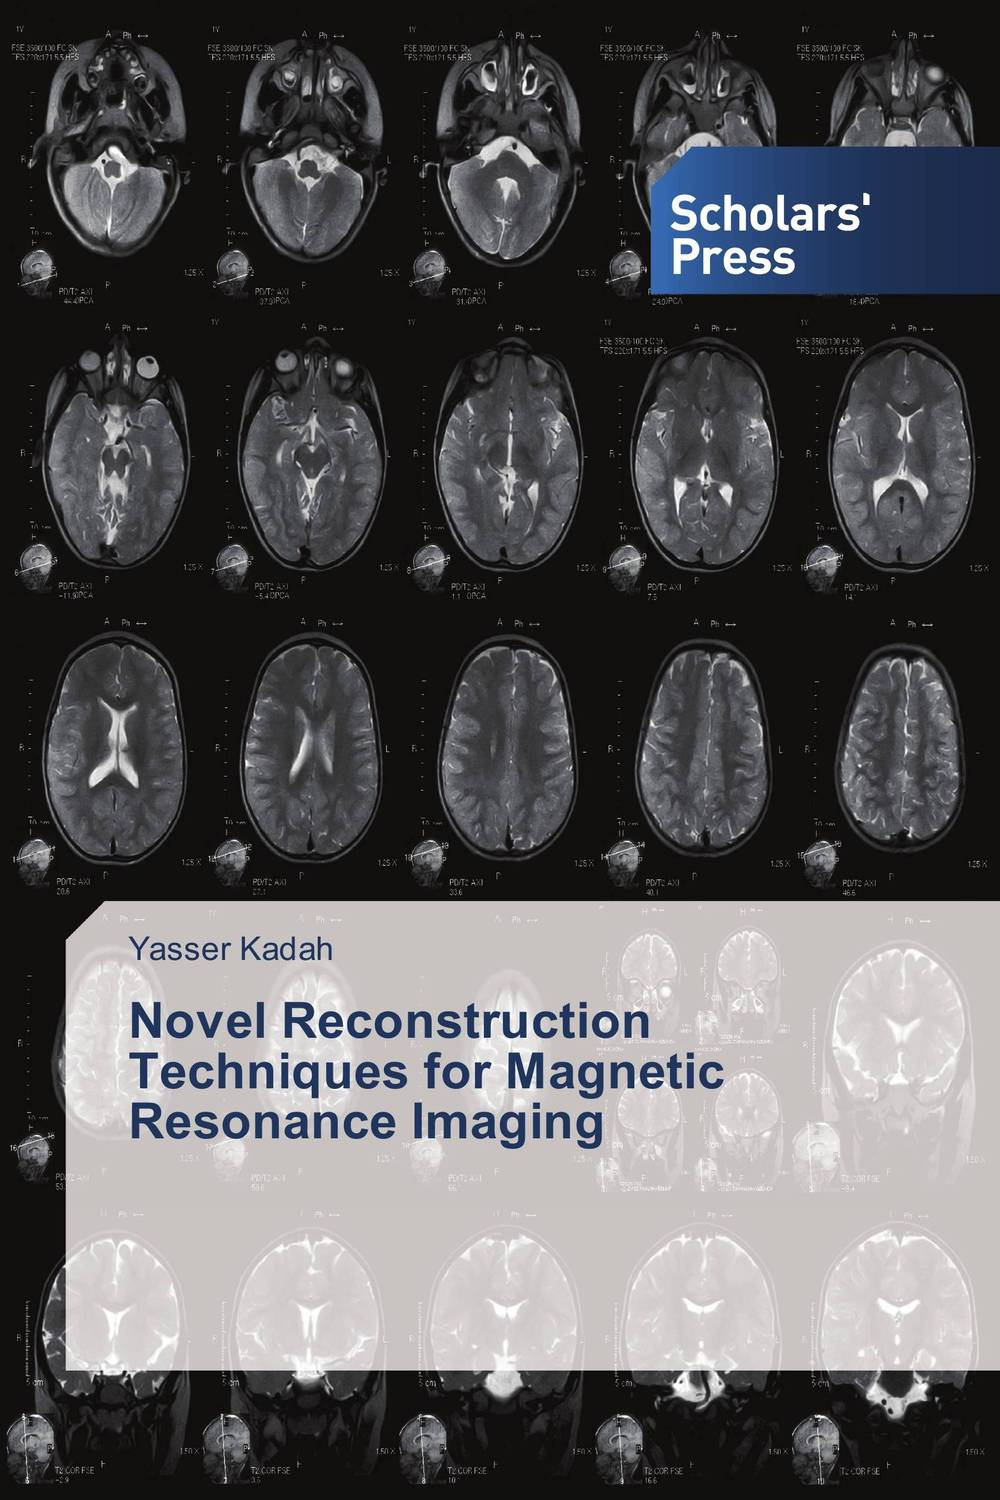 Novel Reconstruction Techniques for Magnetic Resonance Imaging reconstruction in philosophy